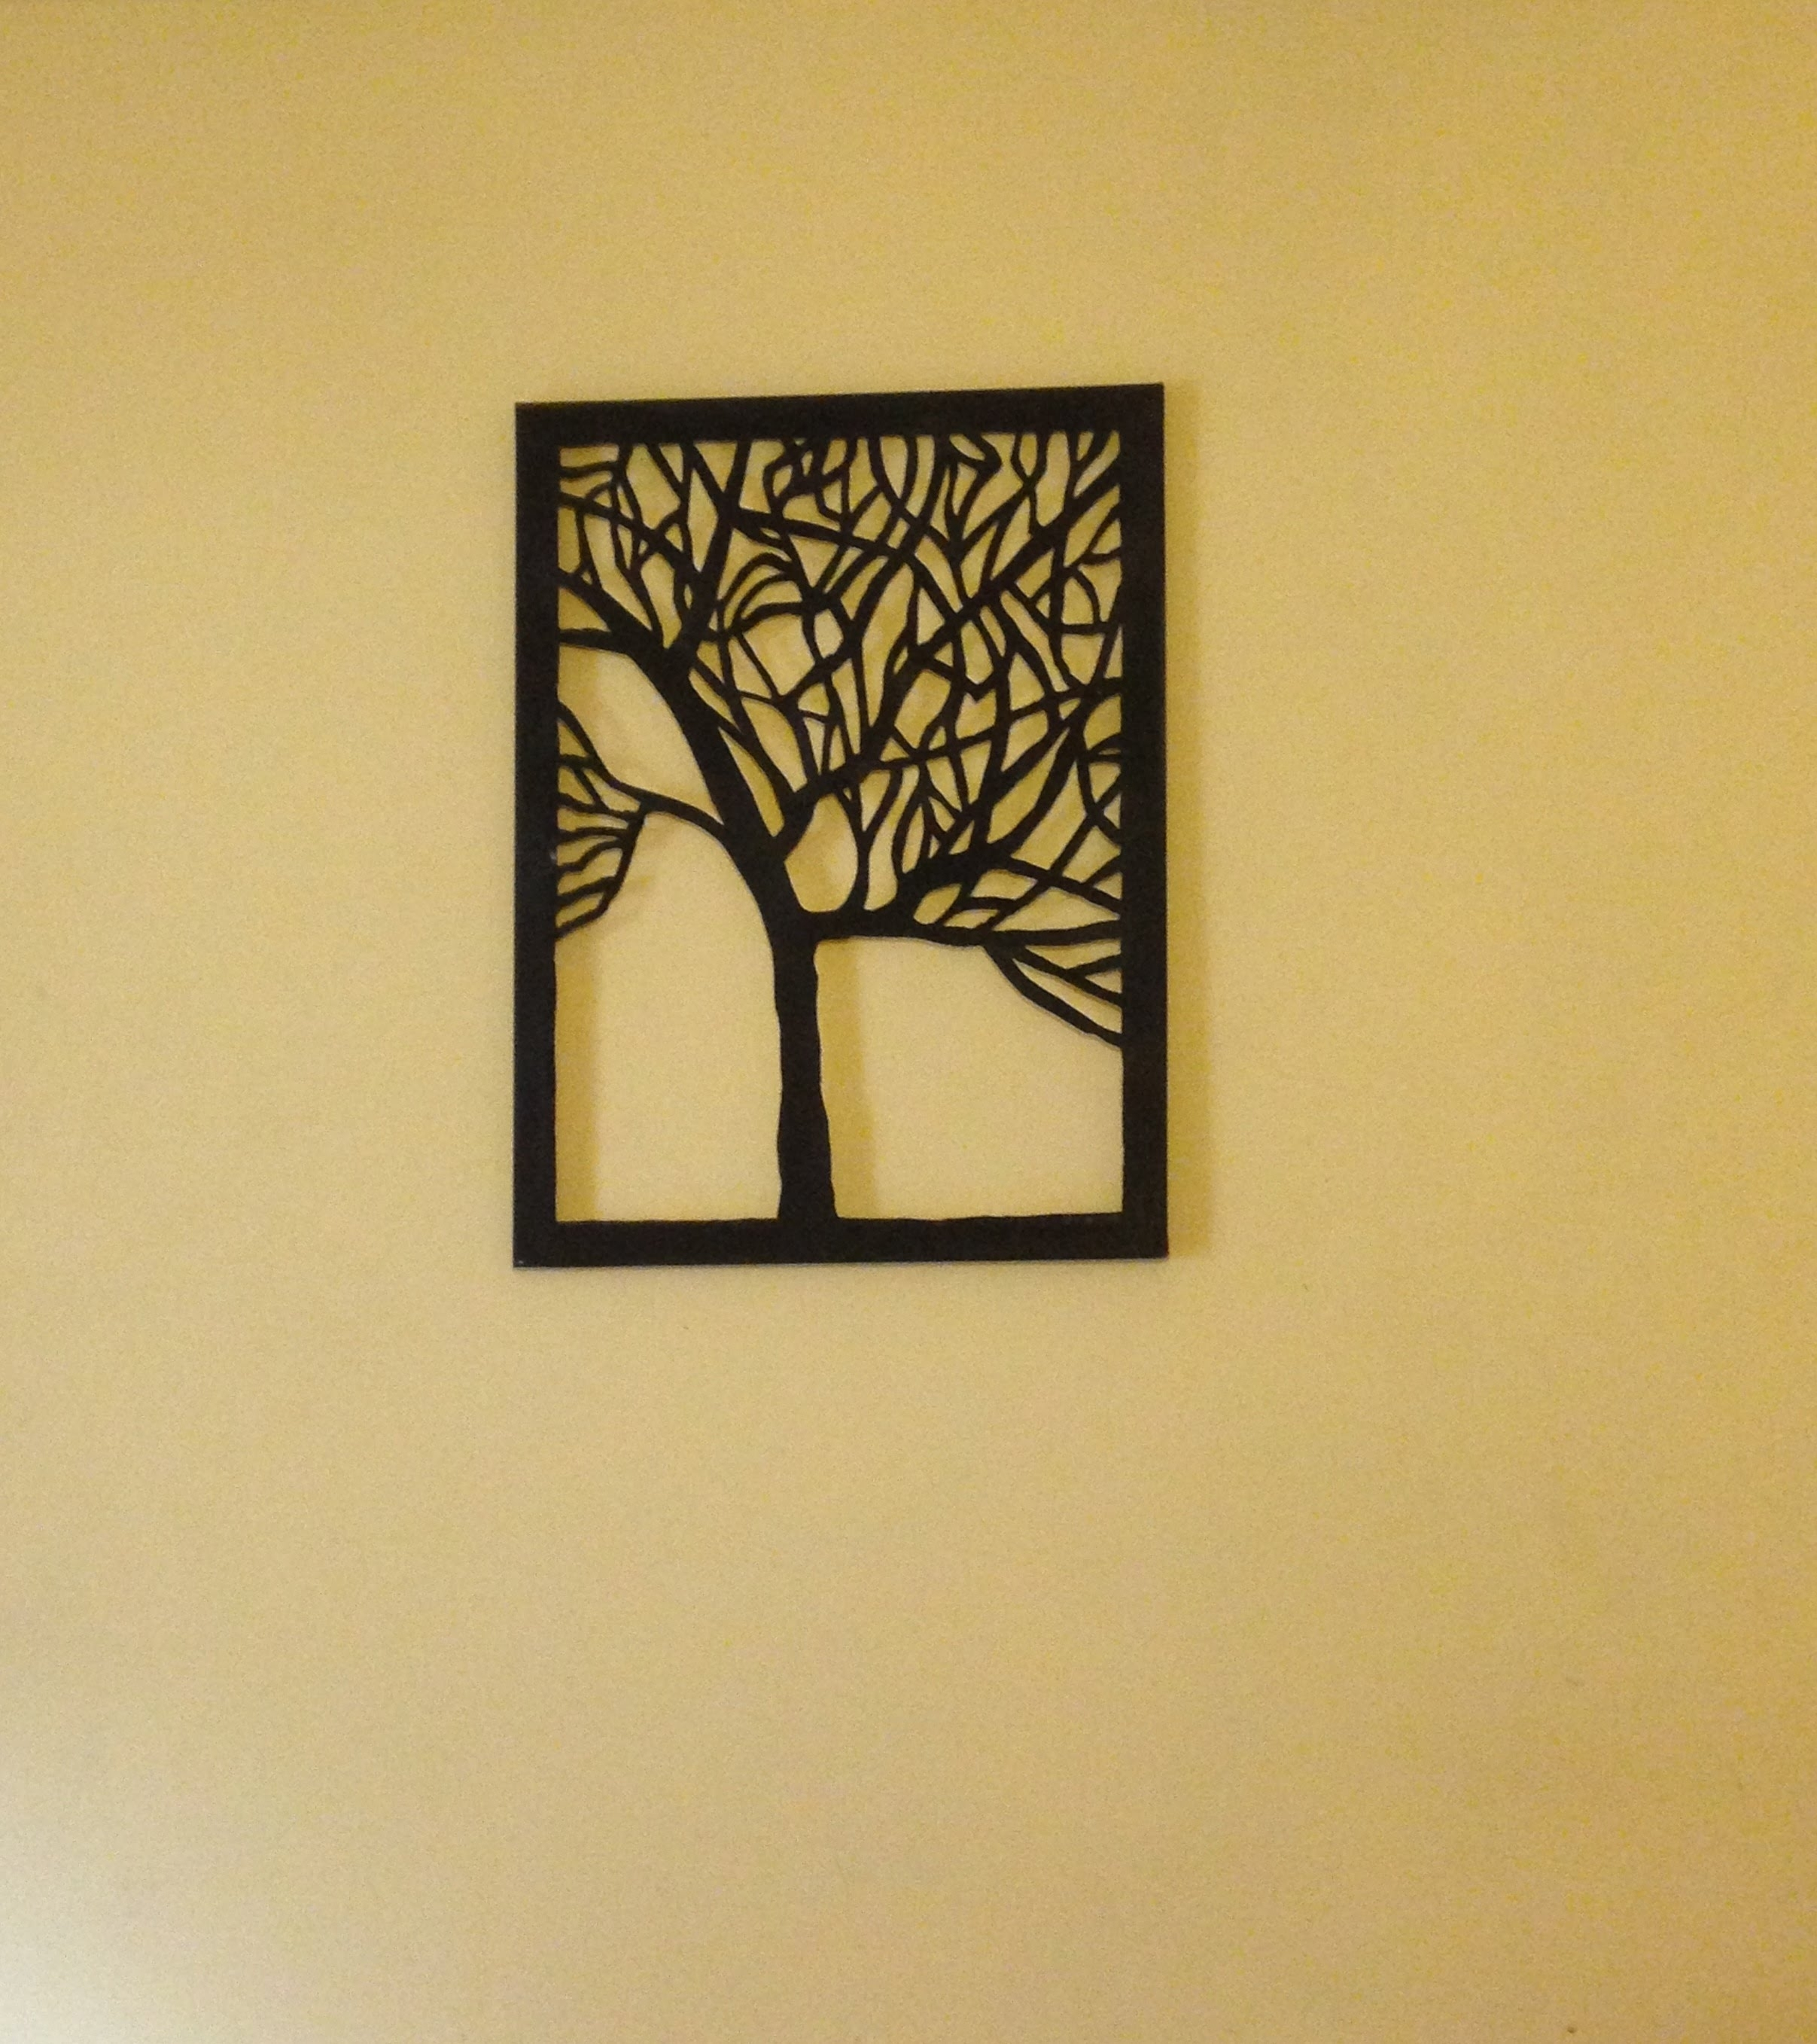 Amazing Diy Canvas Tree Cut Out (Wall Art Home Decor Idea) – Youtube Intended For Most Recent Home Decor Wall Art (View 1 of 20)